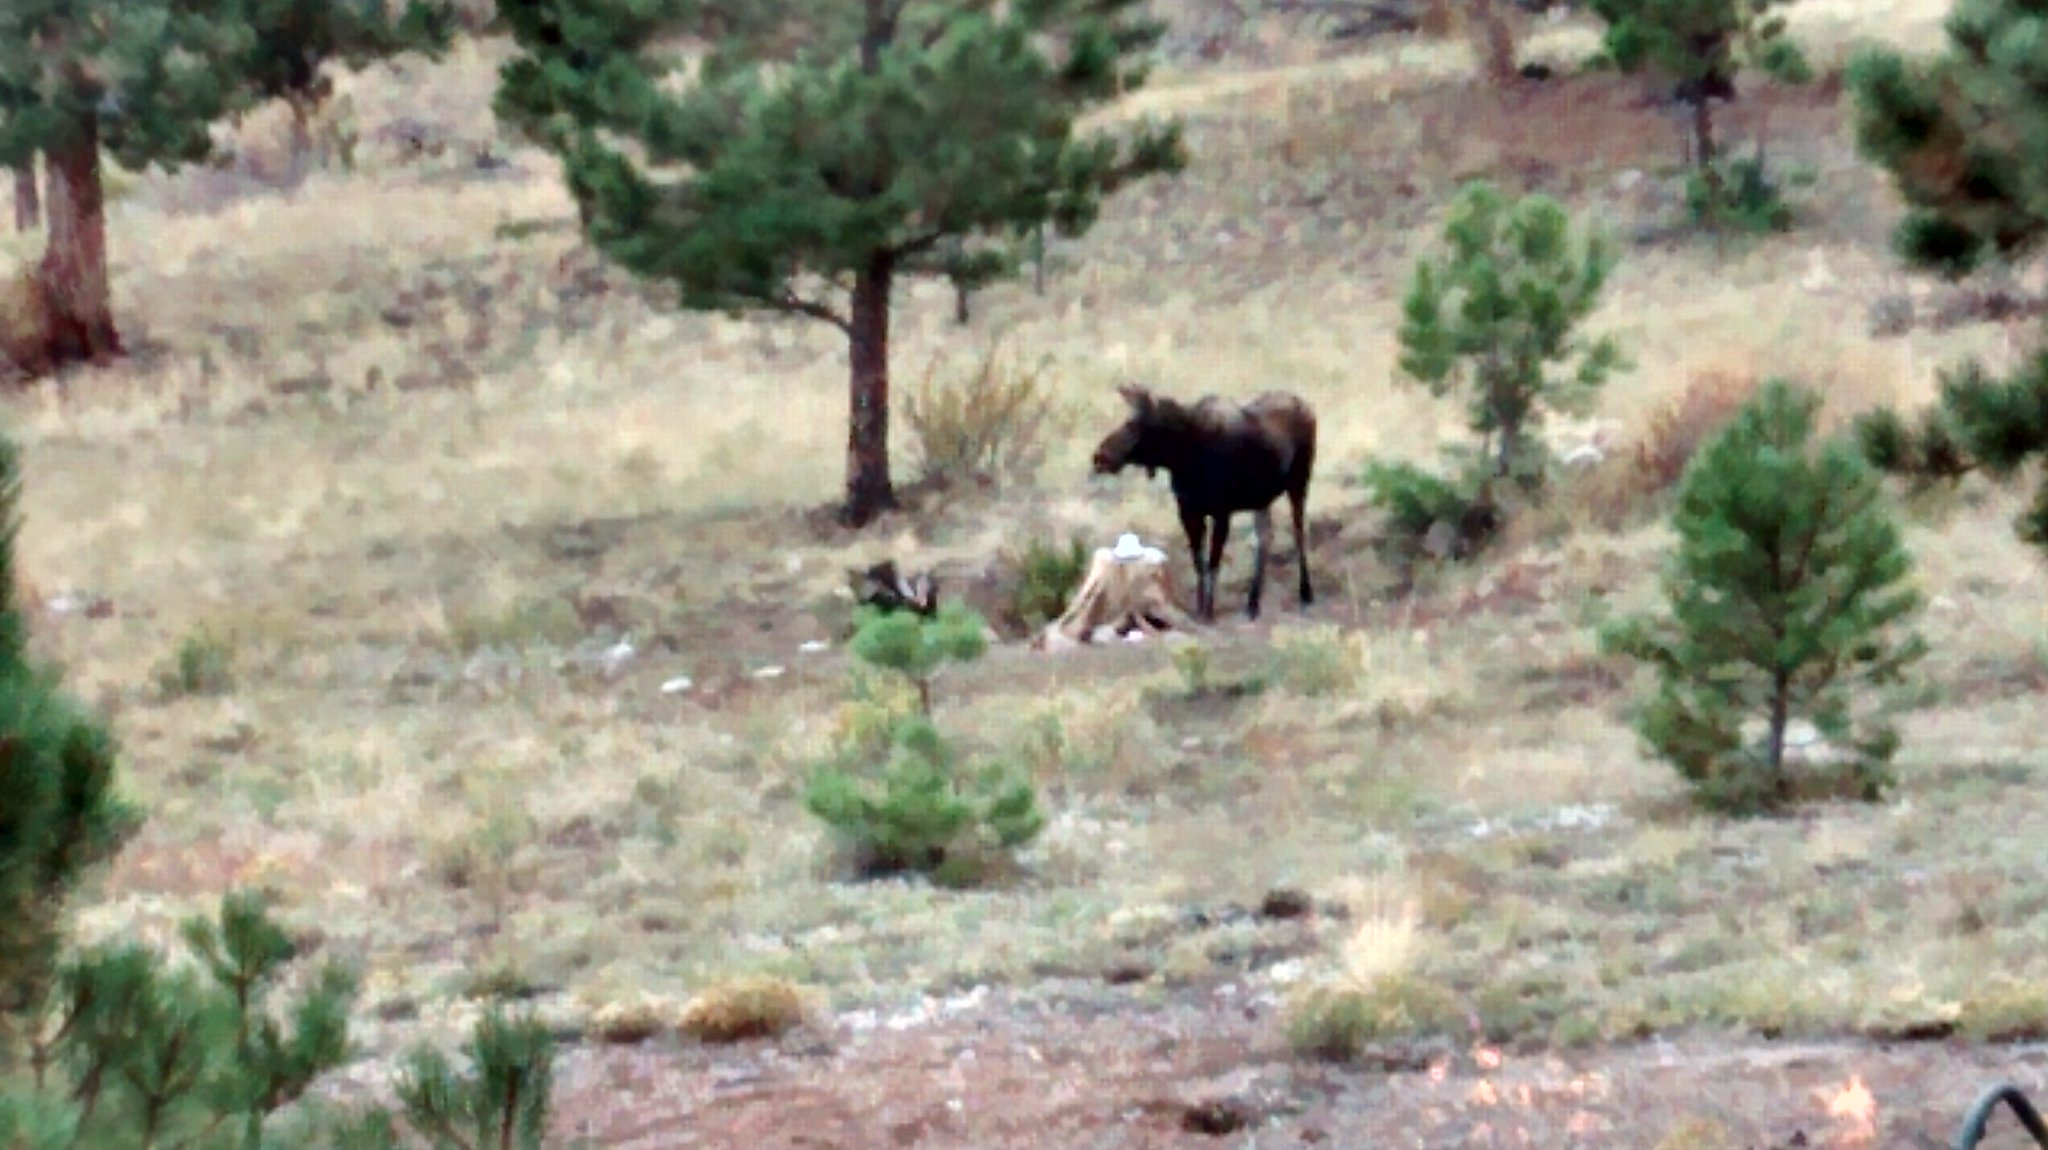 Dave Neal #chatsnap-ing from BV Co. Where never is heard a discouraging word. (Moose in my backyard.) https://t.co/8kz9L6byG3